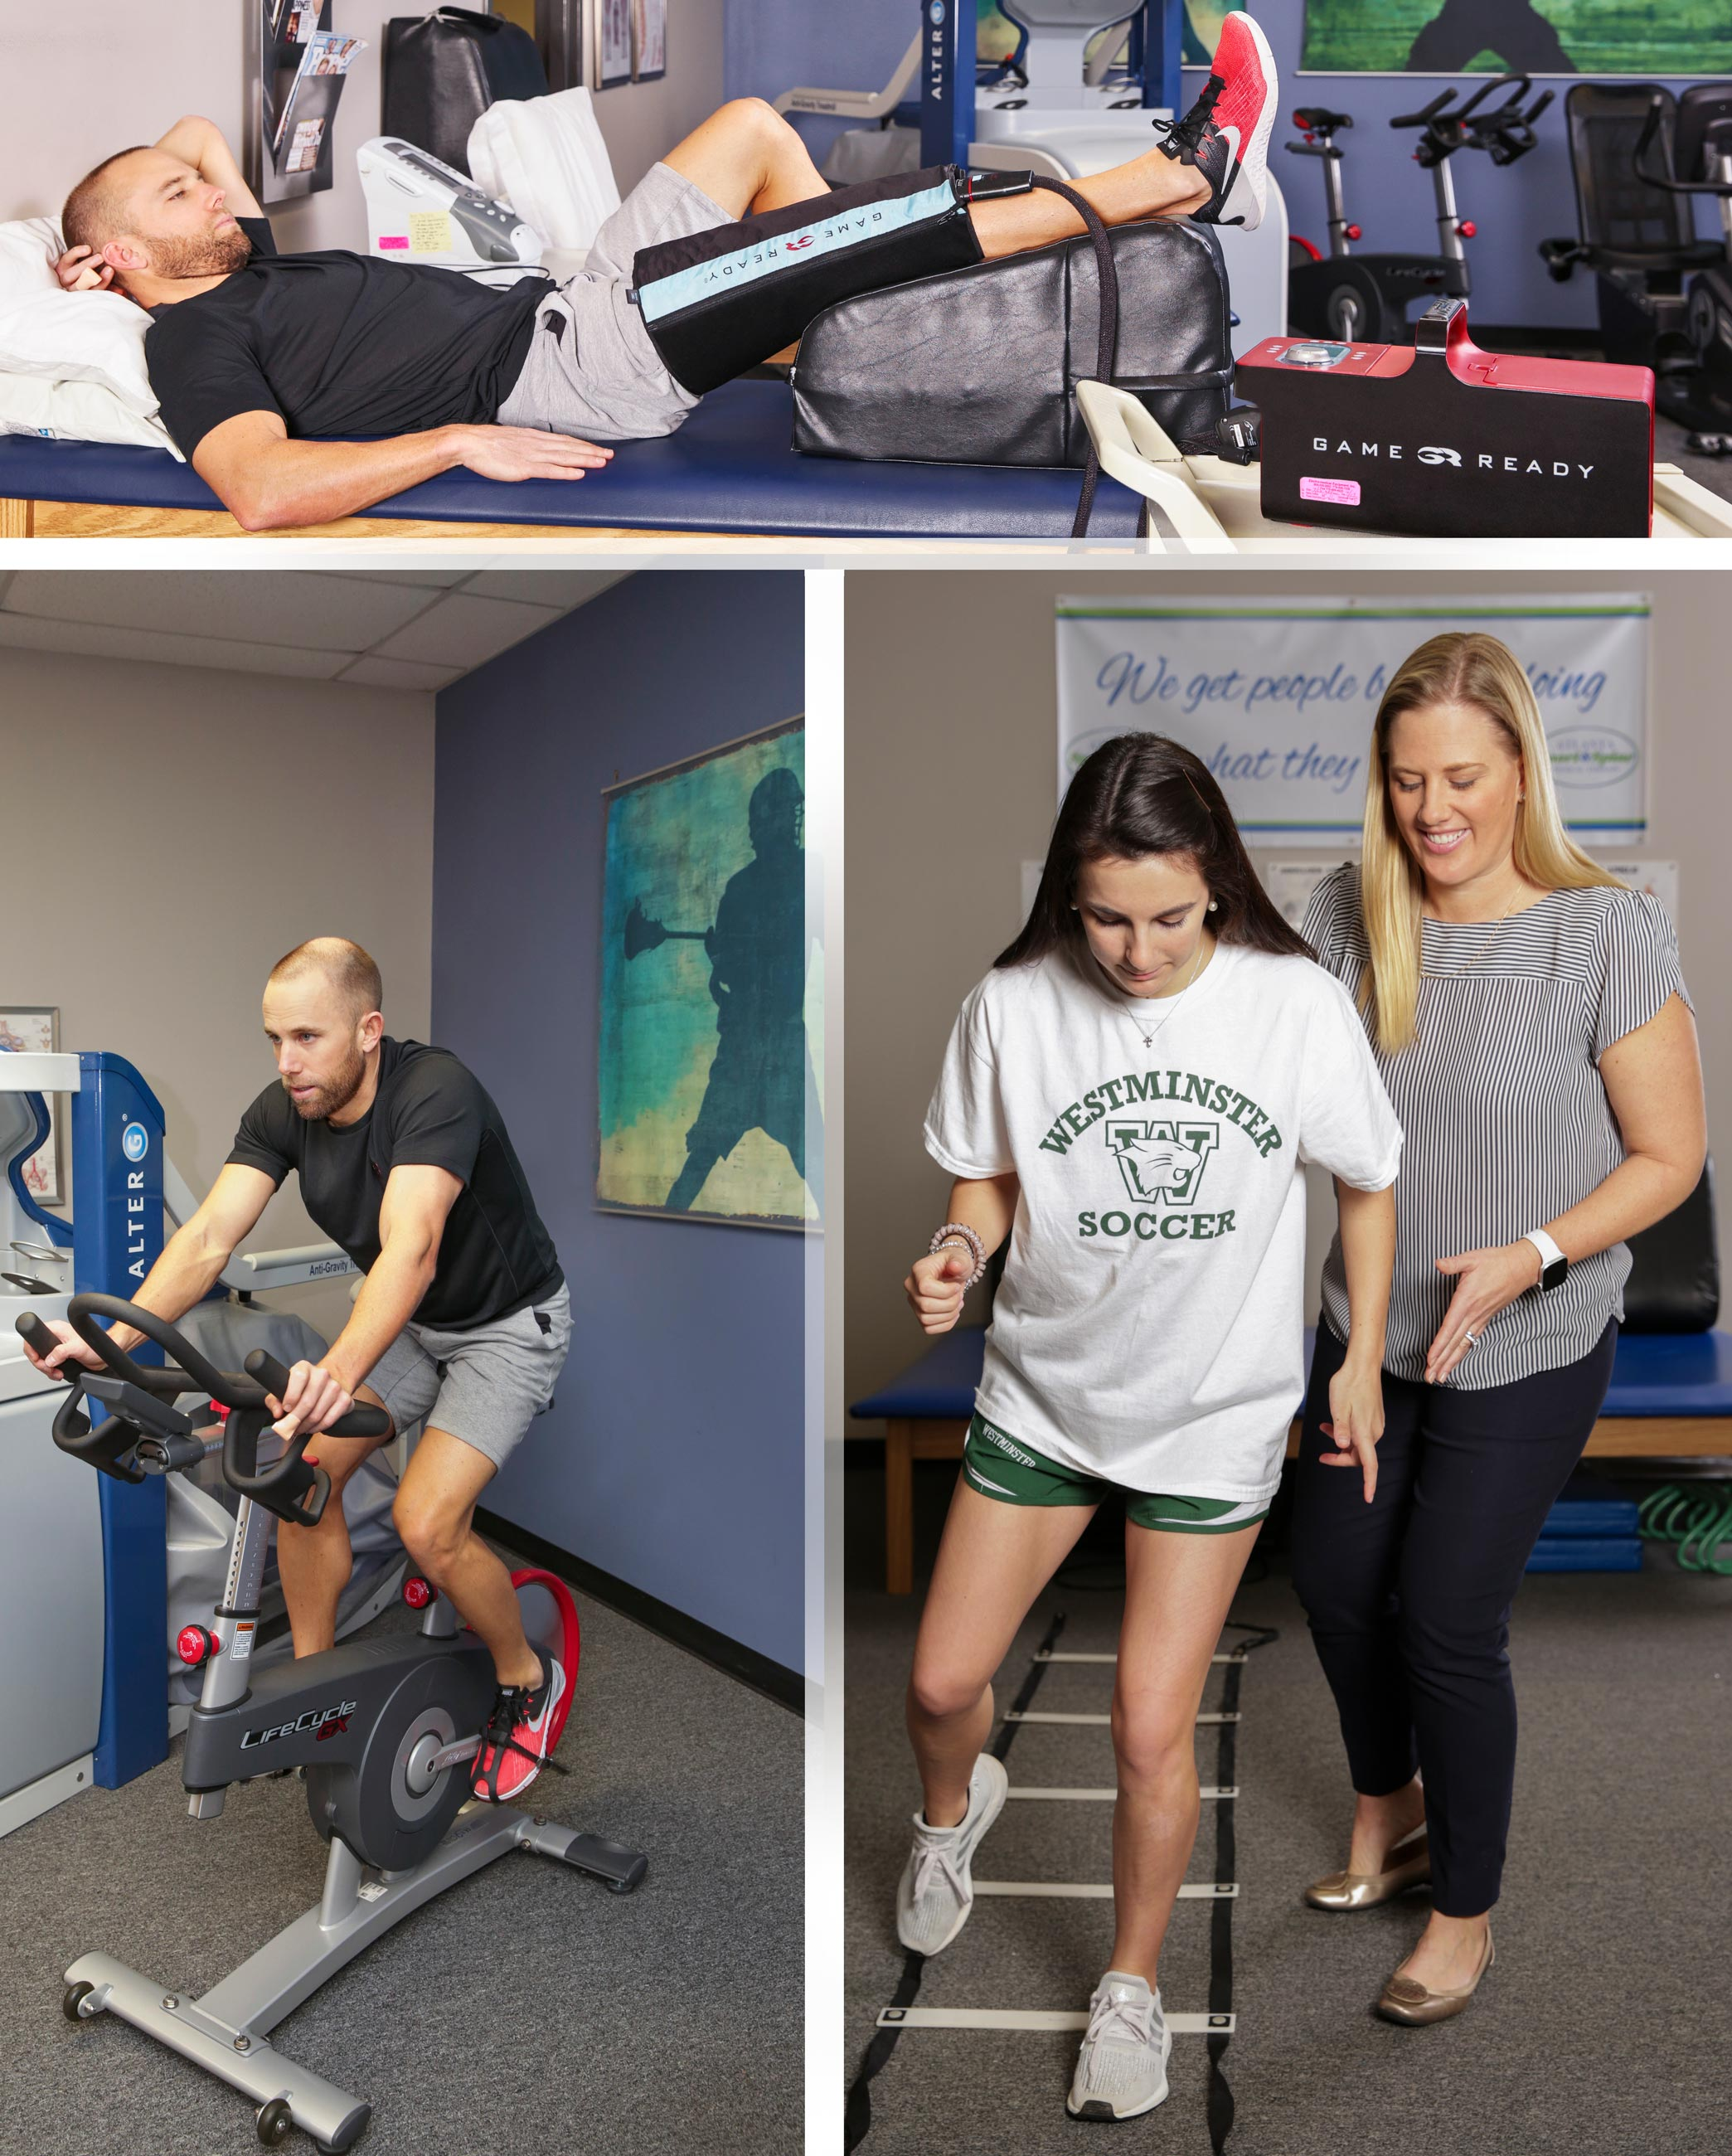 Sport Training is taken seriously at Atlanta Sport and Spine